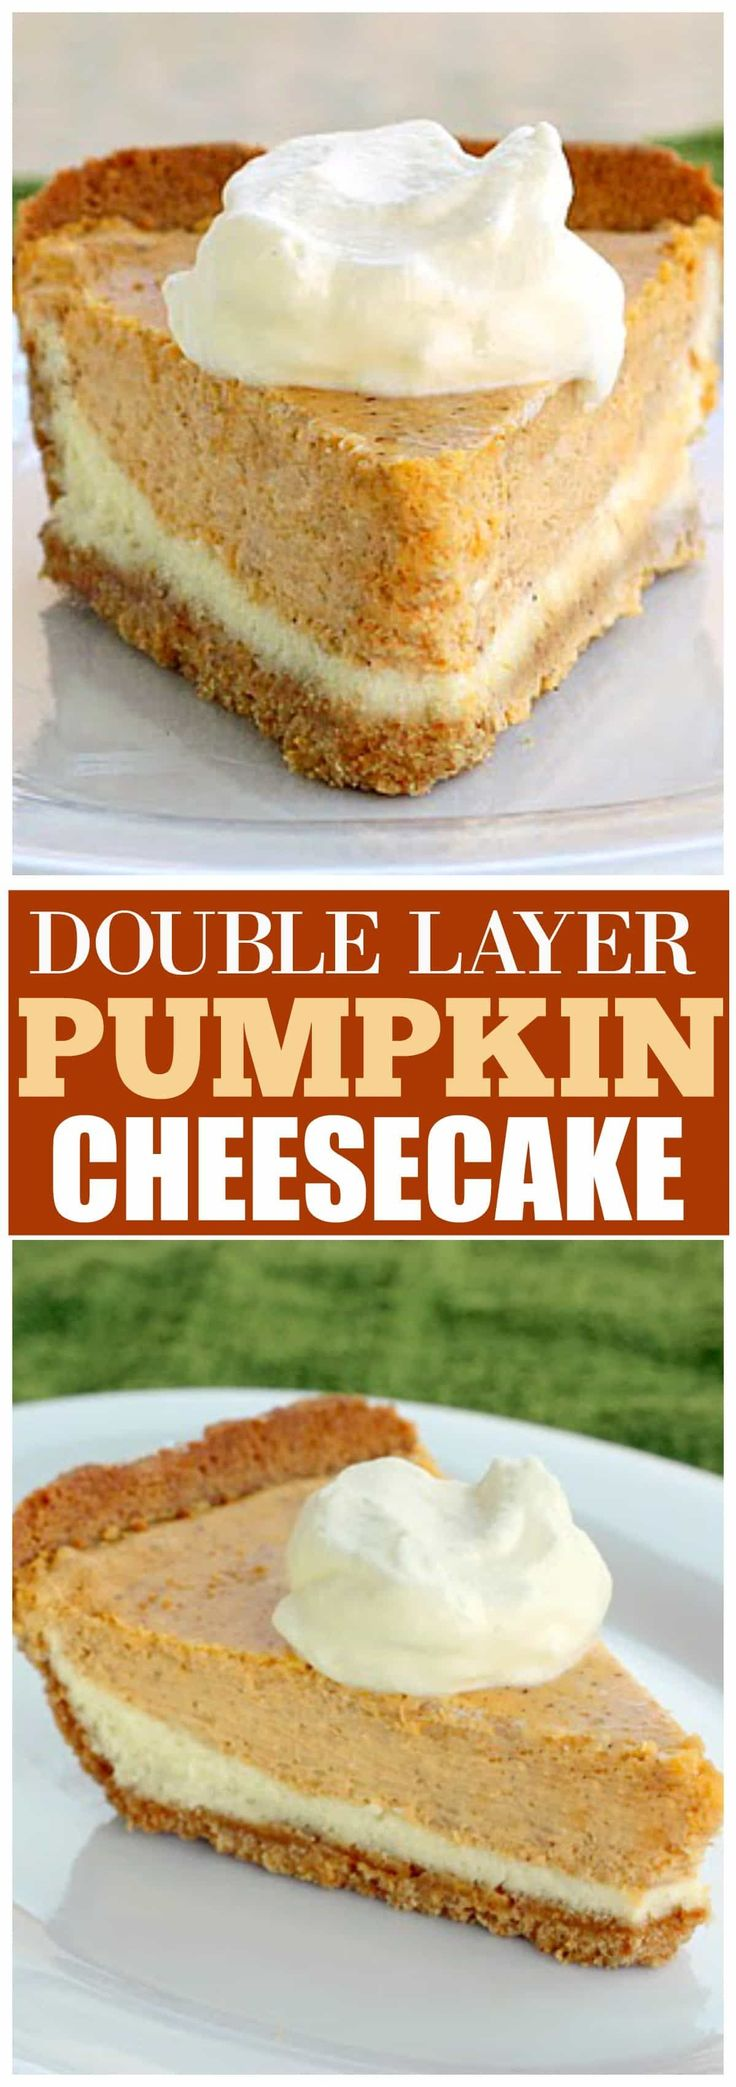 287 best Food: Cheesecake Recipes images on Pinterest ...